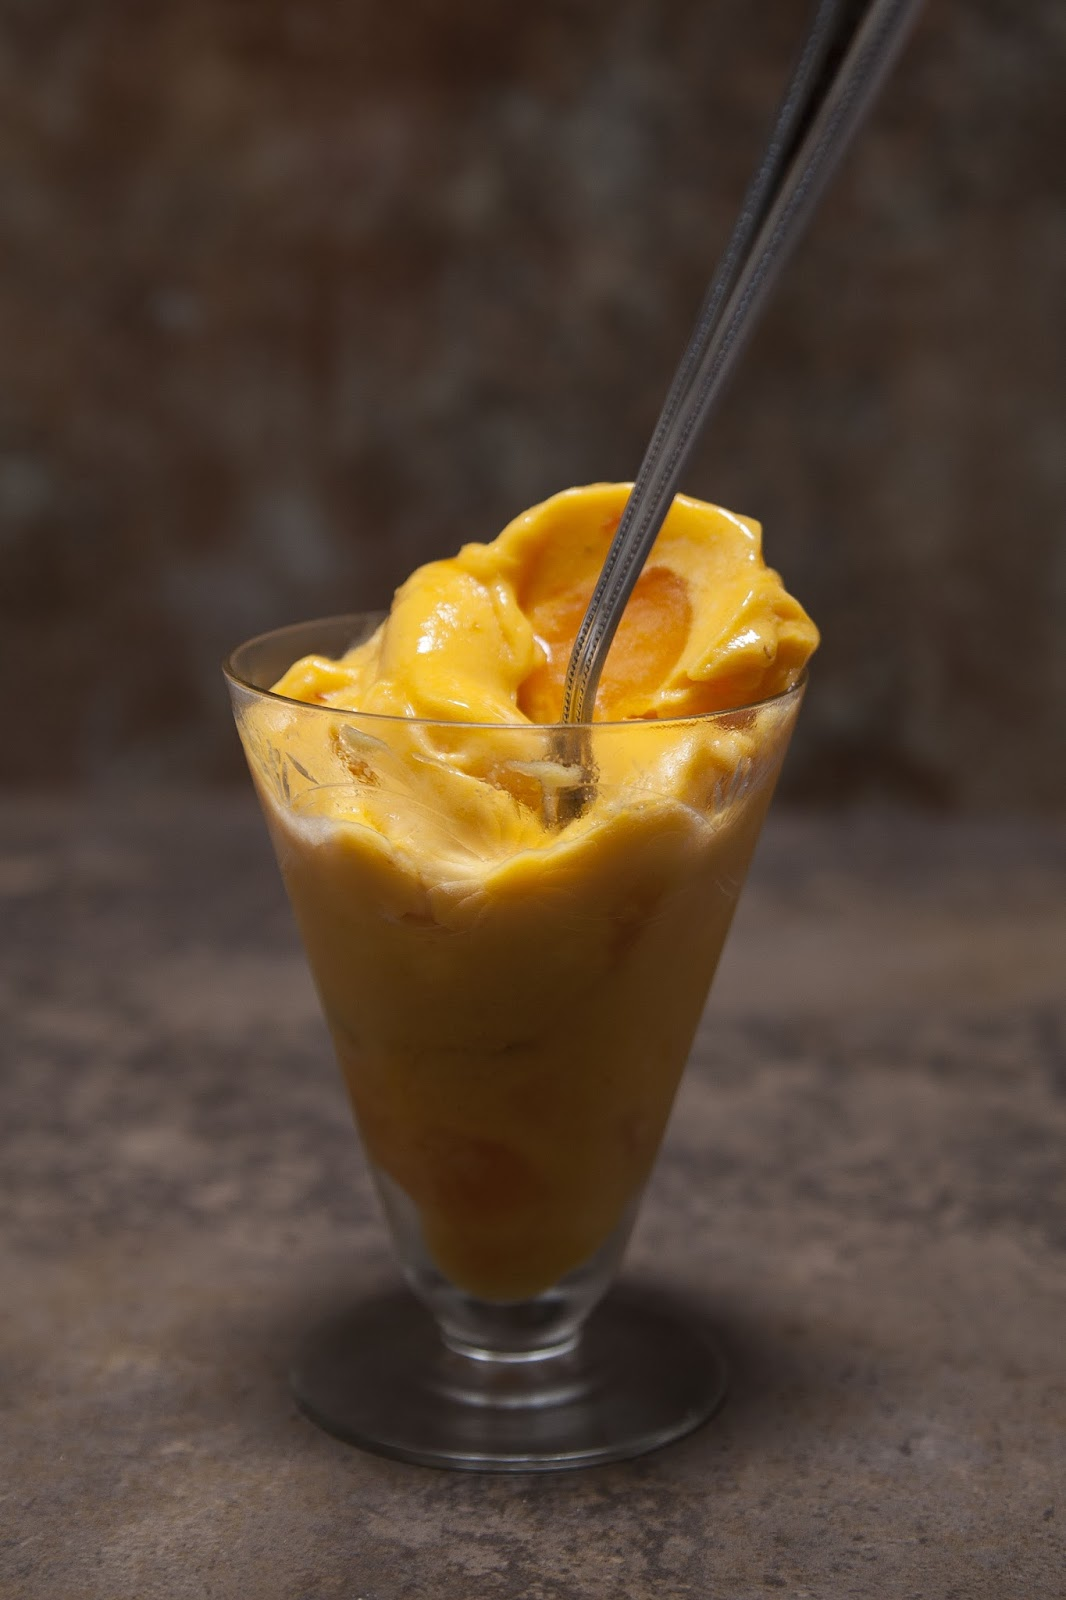 persimmon ice cream. no dairy, no sugar, no time. fast fast fast!